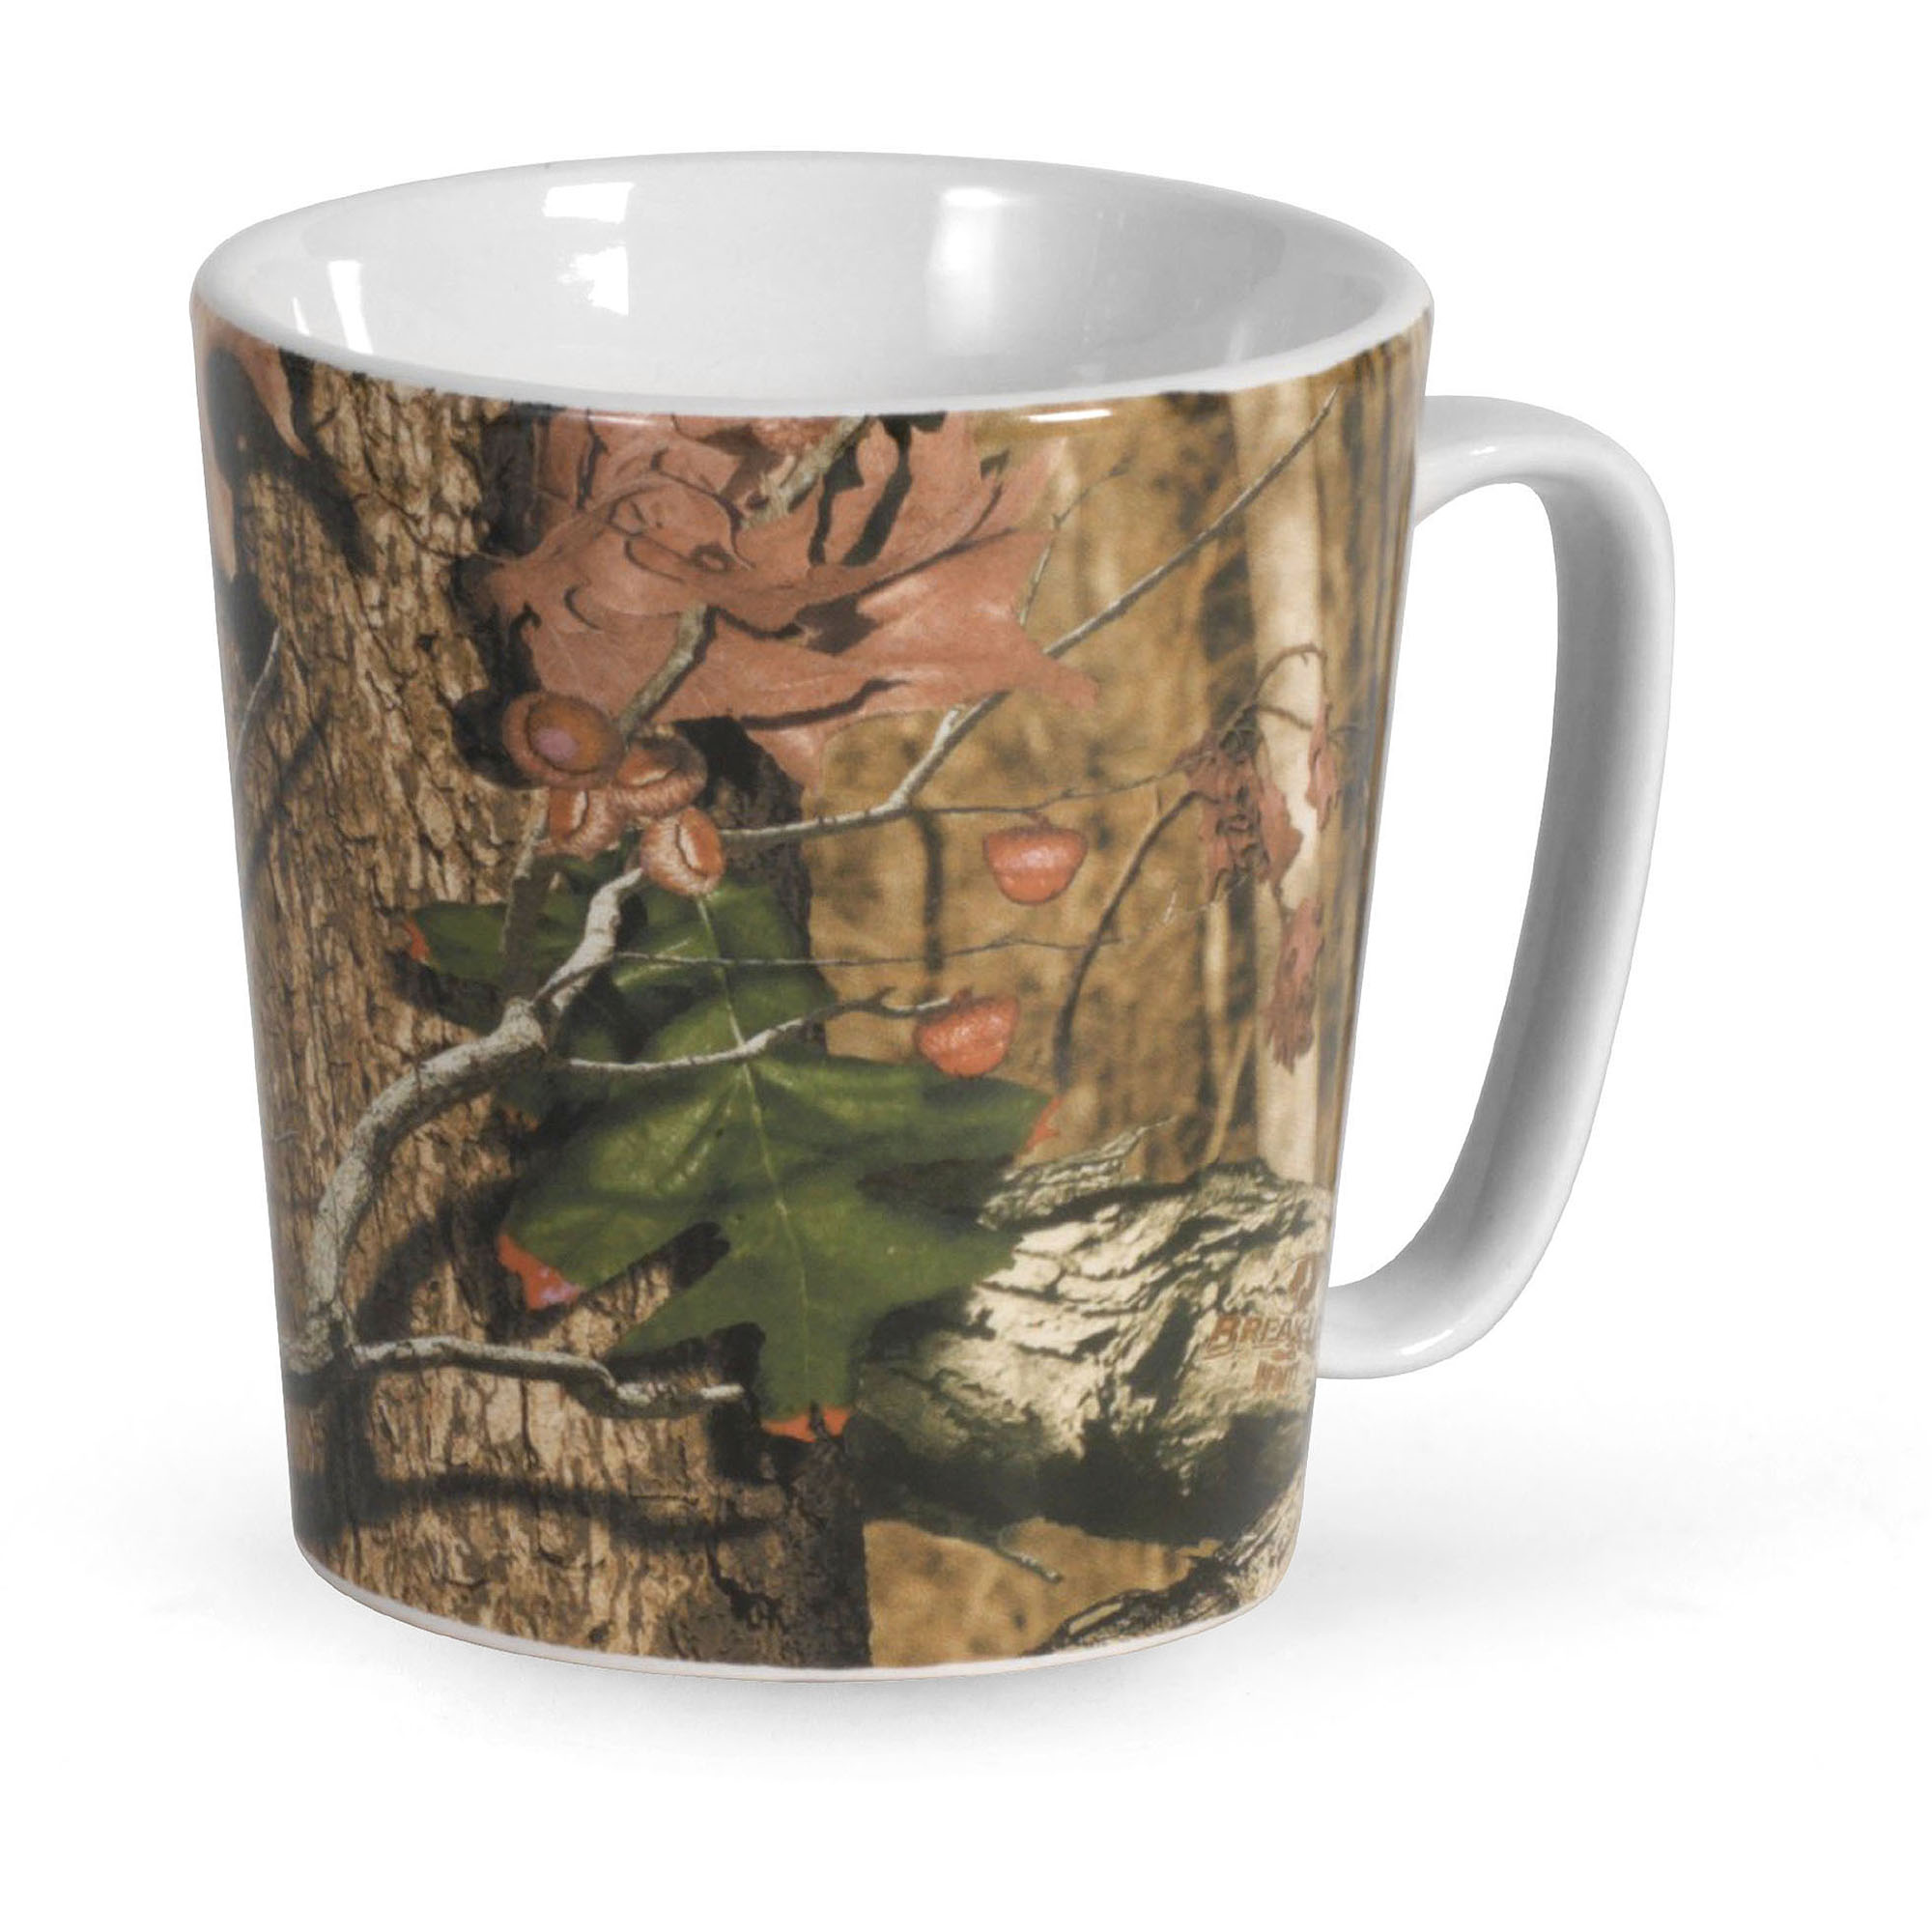 Mossy Oak Green Break Up Infinity Set of 4, 16 Ounce Mugs